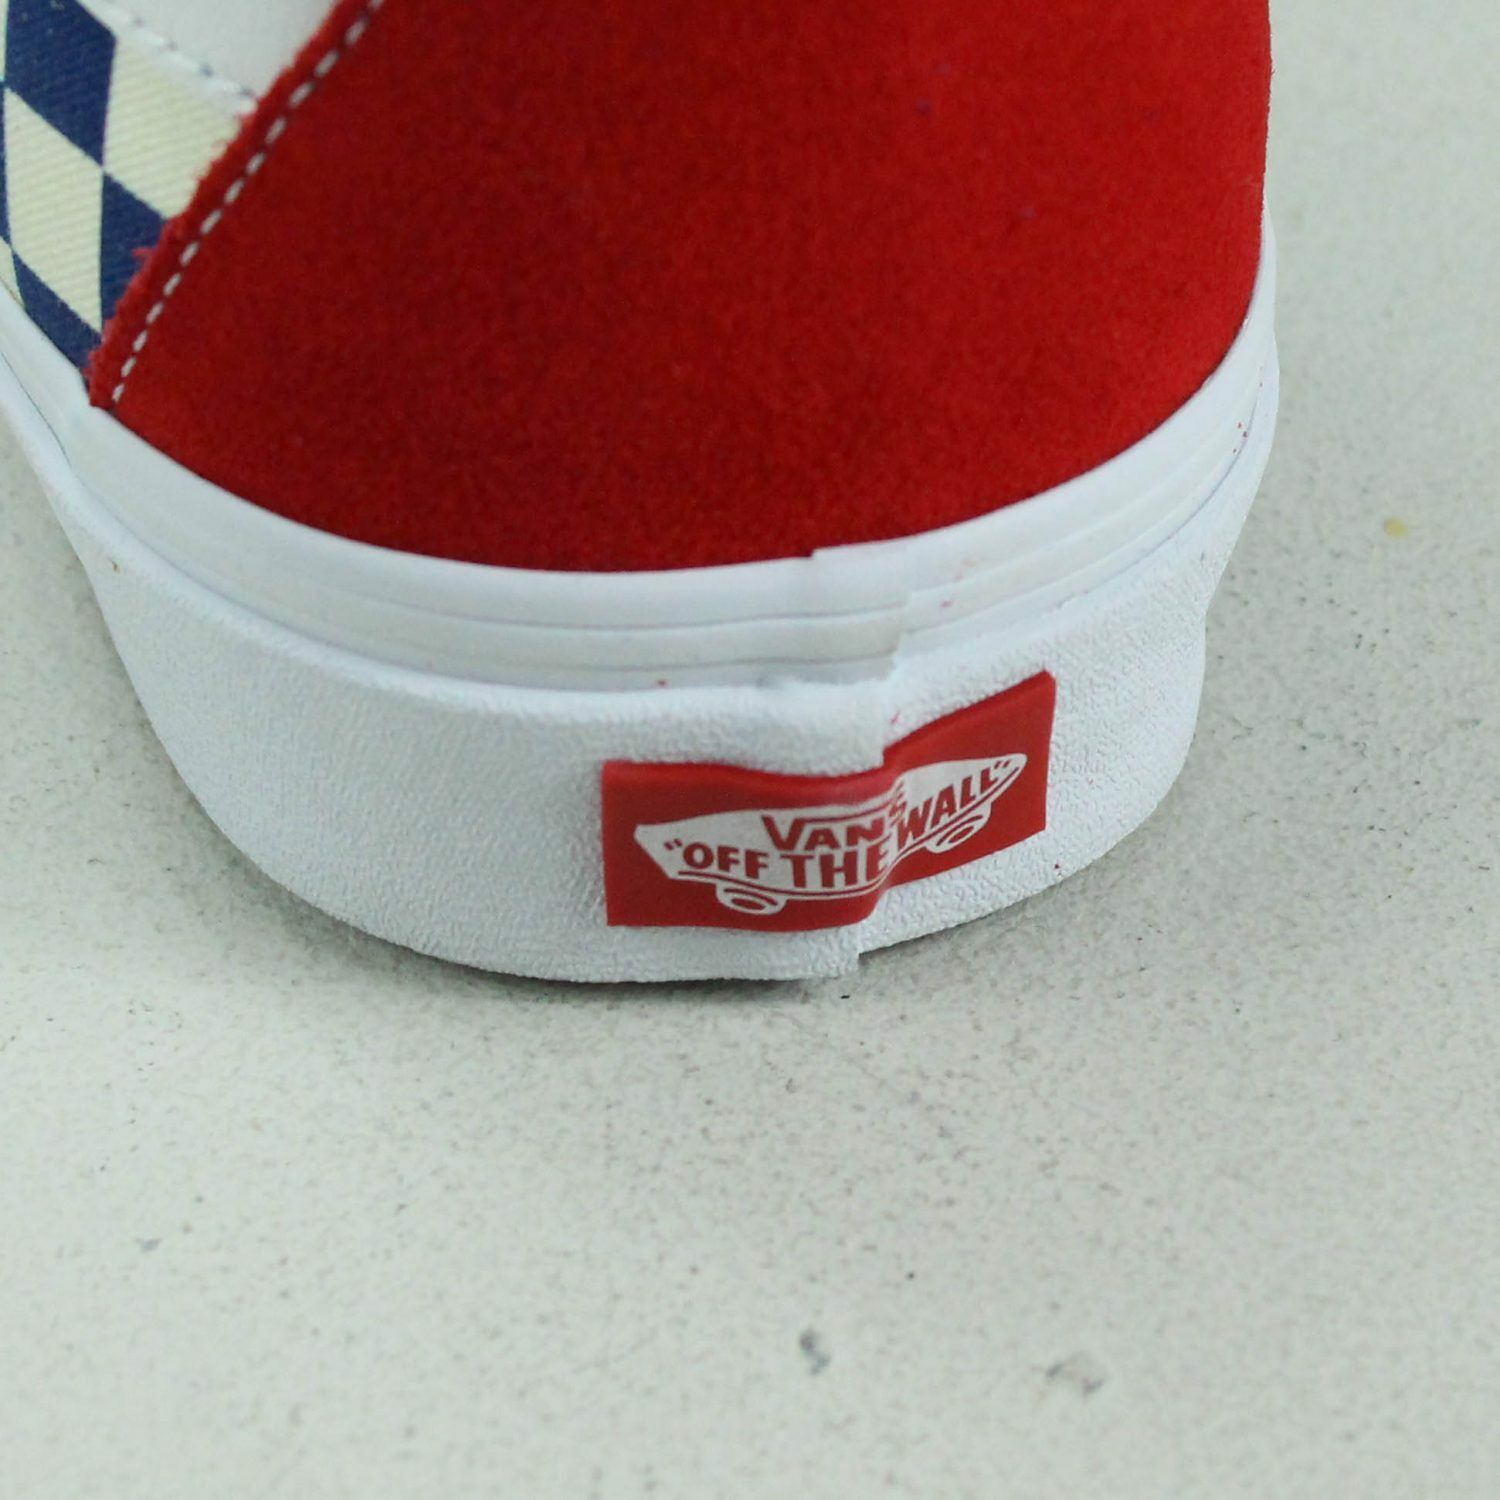 Vans BMX Checkerboard Sk8 Hi shoes Trainers in in in bluee Red in UK Size 6,7,8,9,10 47eb99